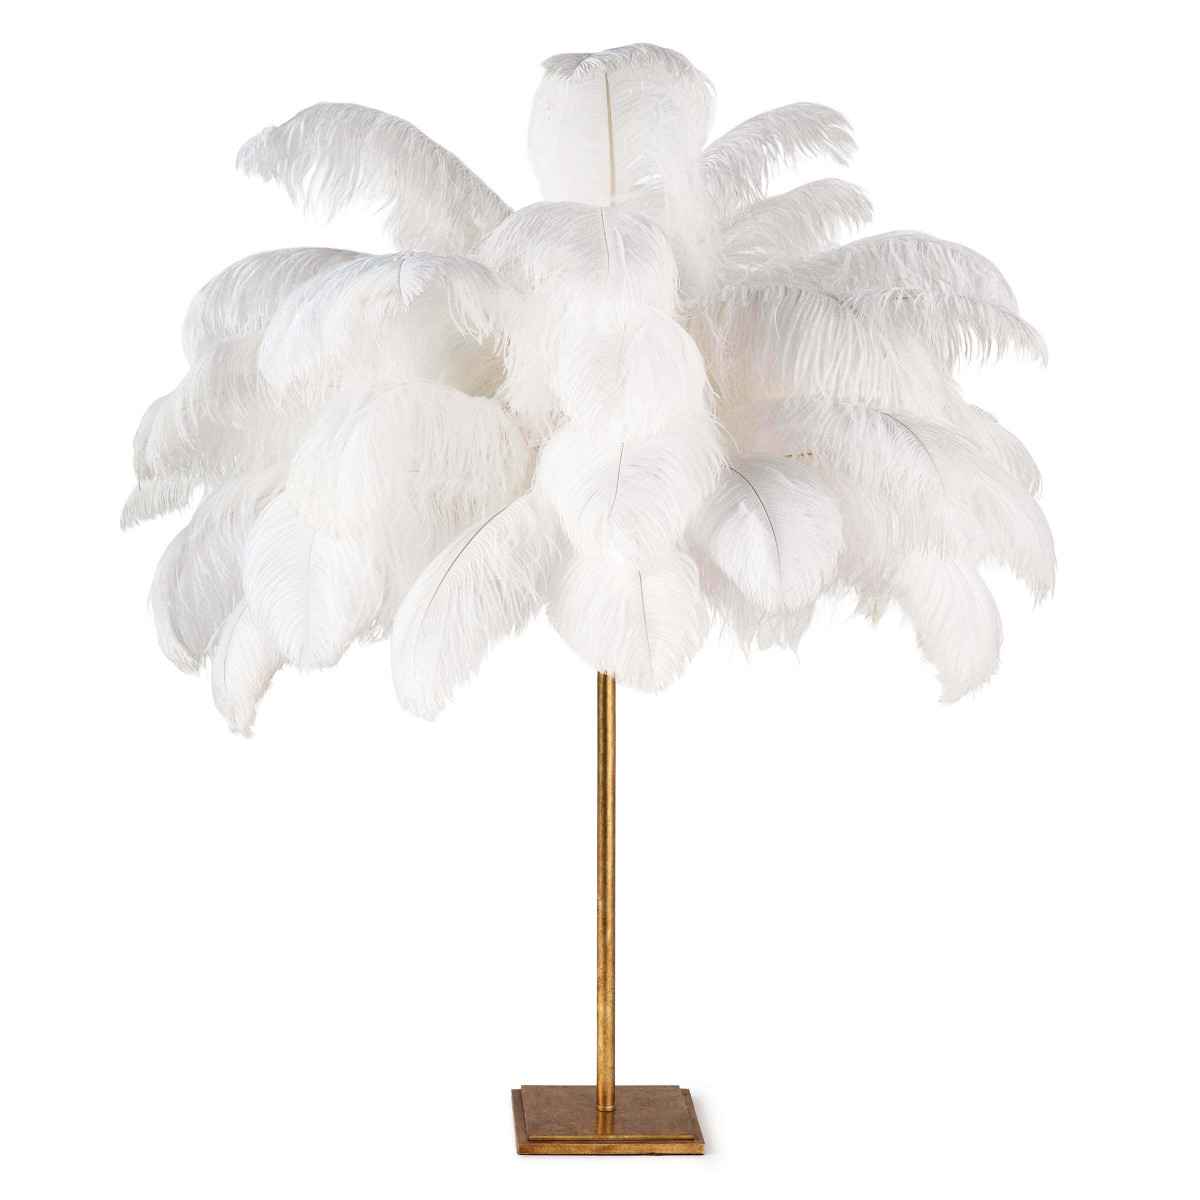 Lisa Feather Lamp-$1,175.00